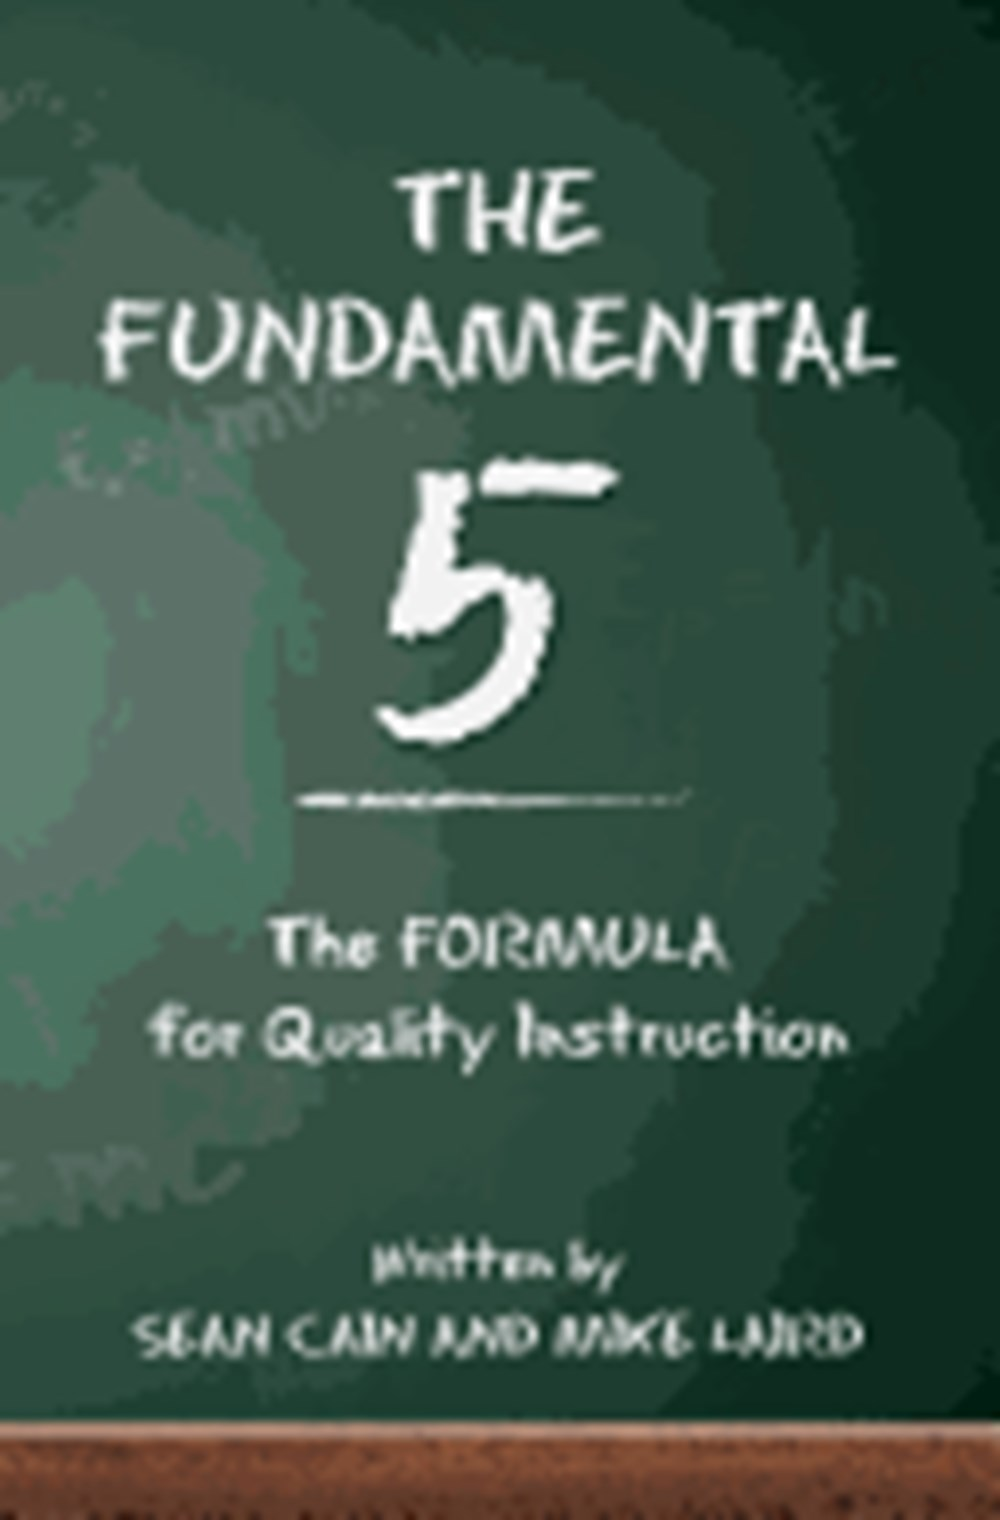 Fundamental 5 The Formula for Quality Instruction